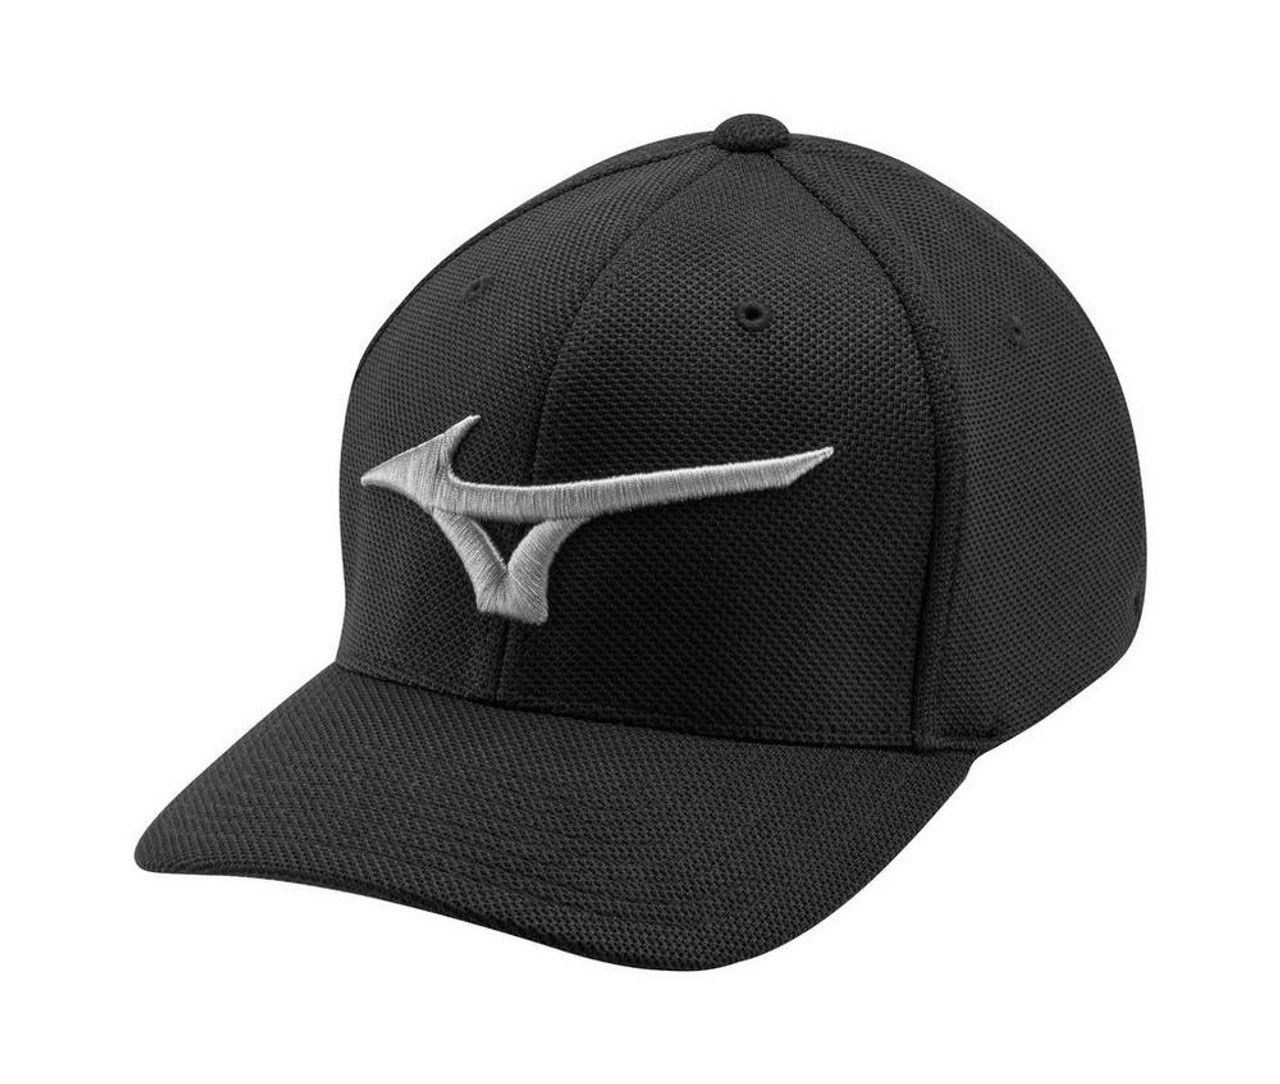 700589099b55f Mizuno Tour Performance Golf Cap